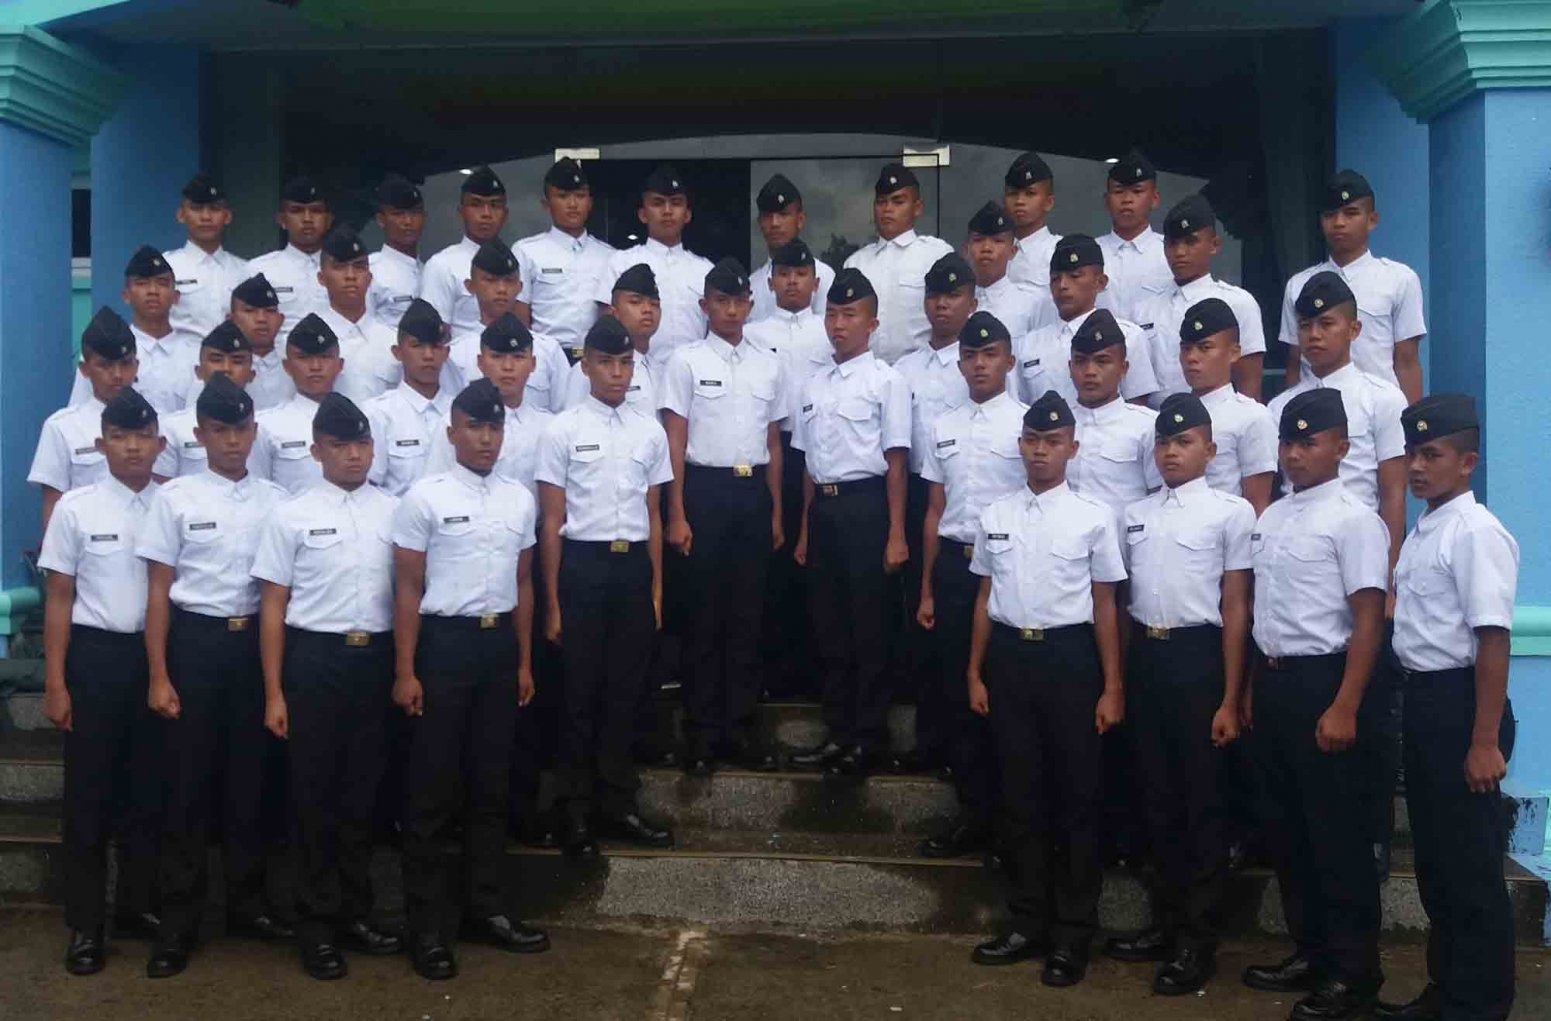 hellespont cadet program